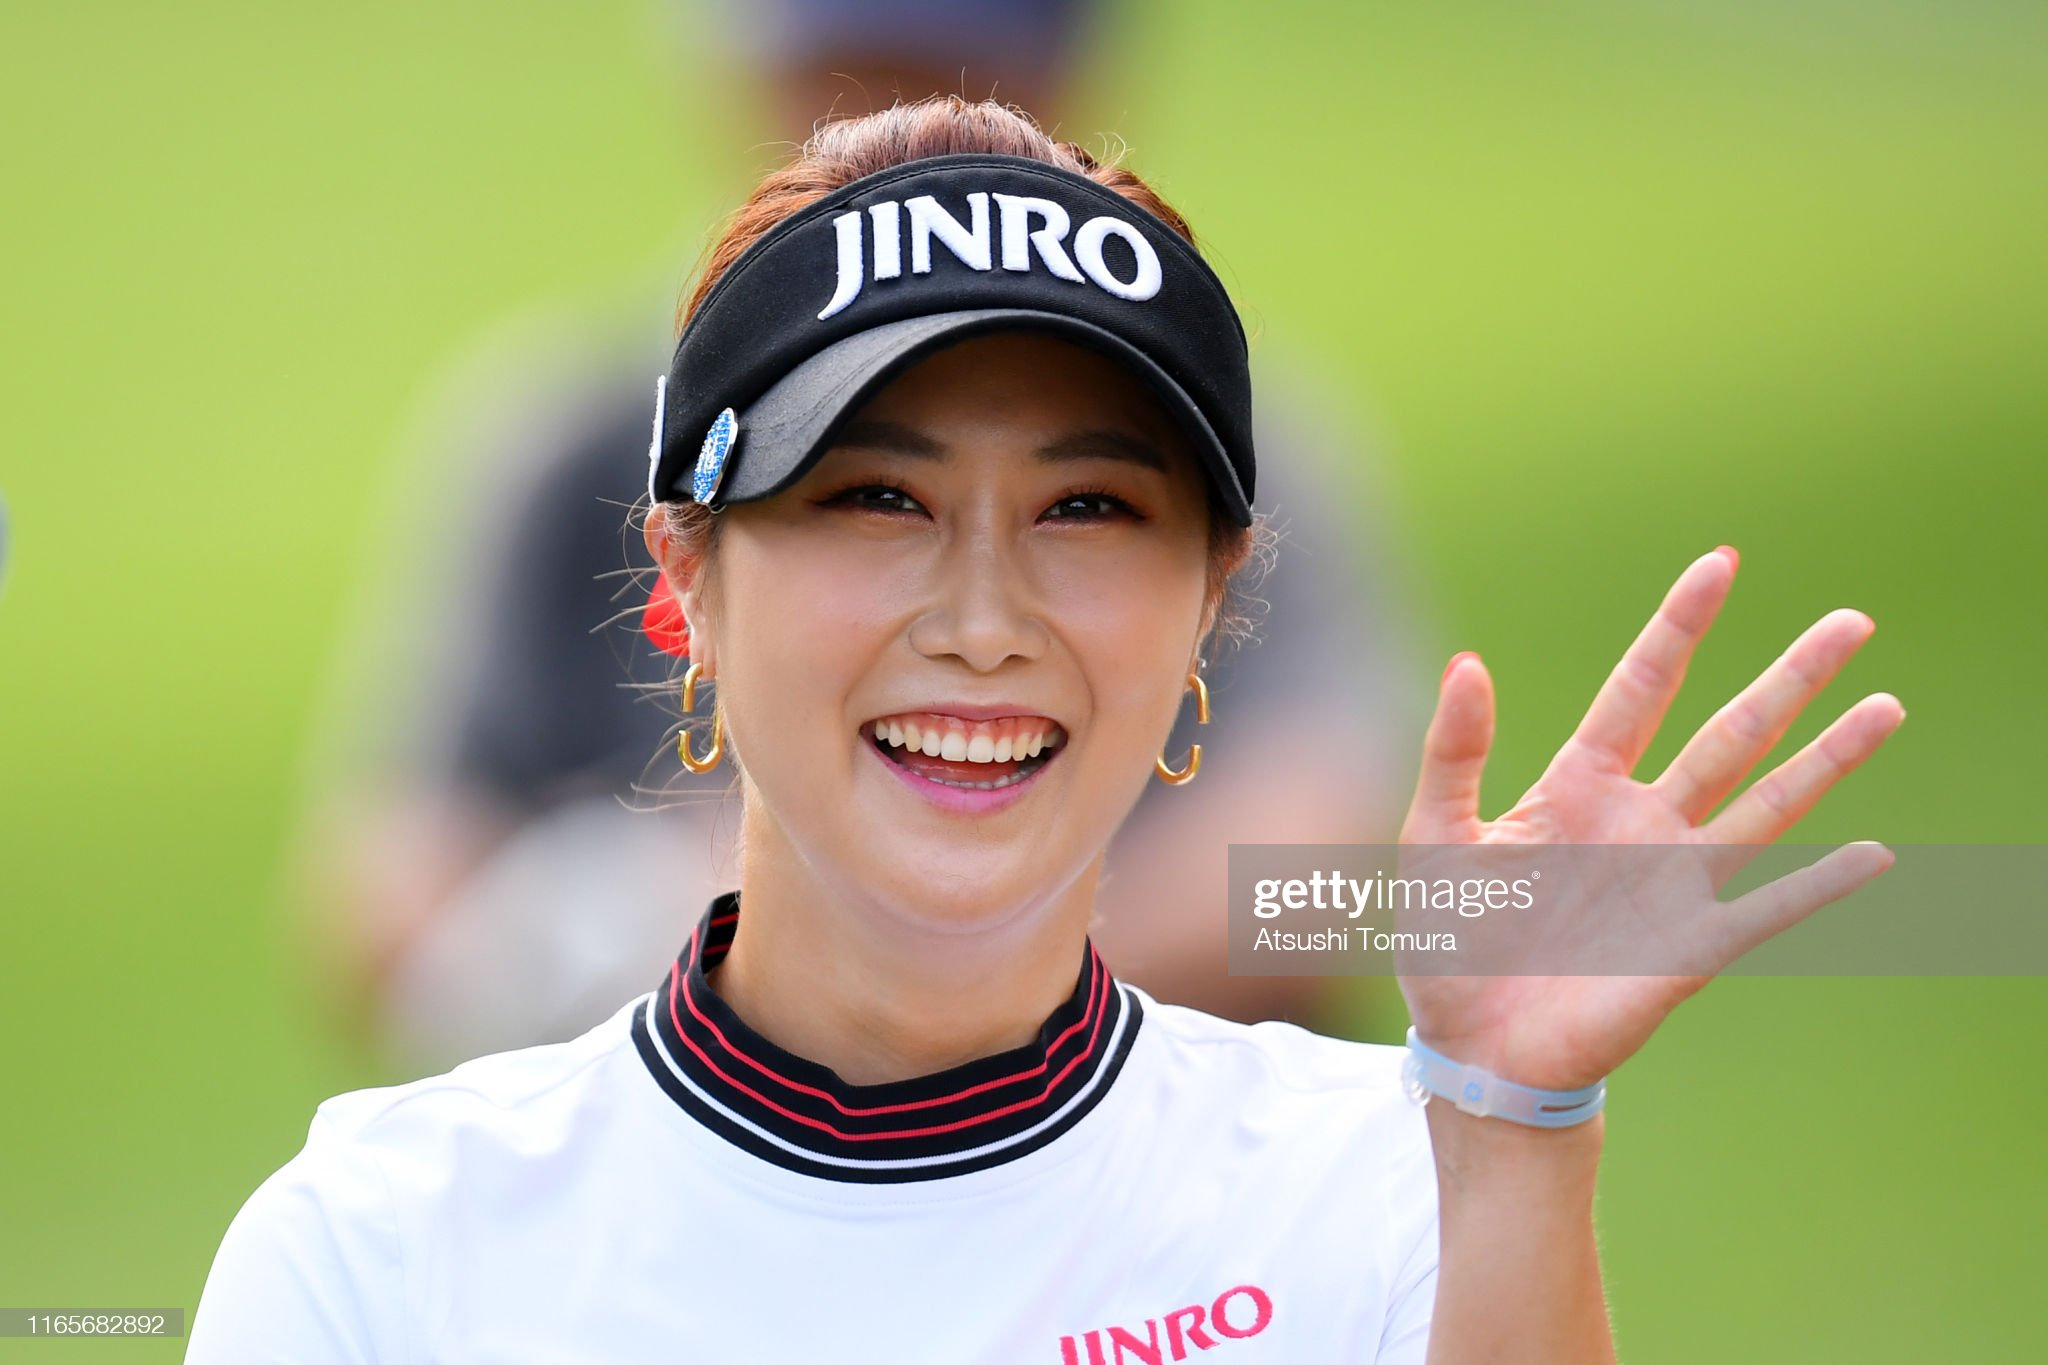 https://media.gettyimages.com/photos/haneul-kim-of-south-korea-waves-during-the-second-round-of-the-daito-picture-id1165682892?s=2048x2048